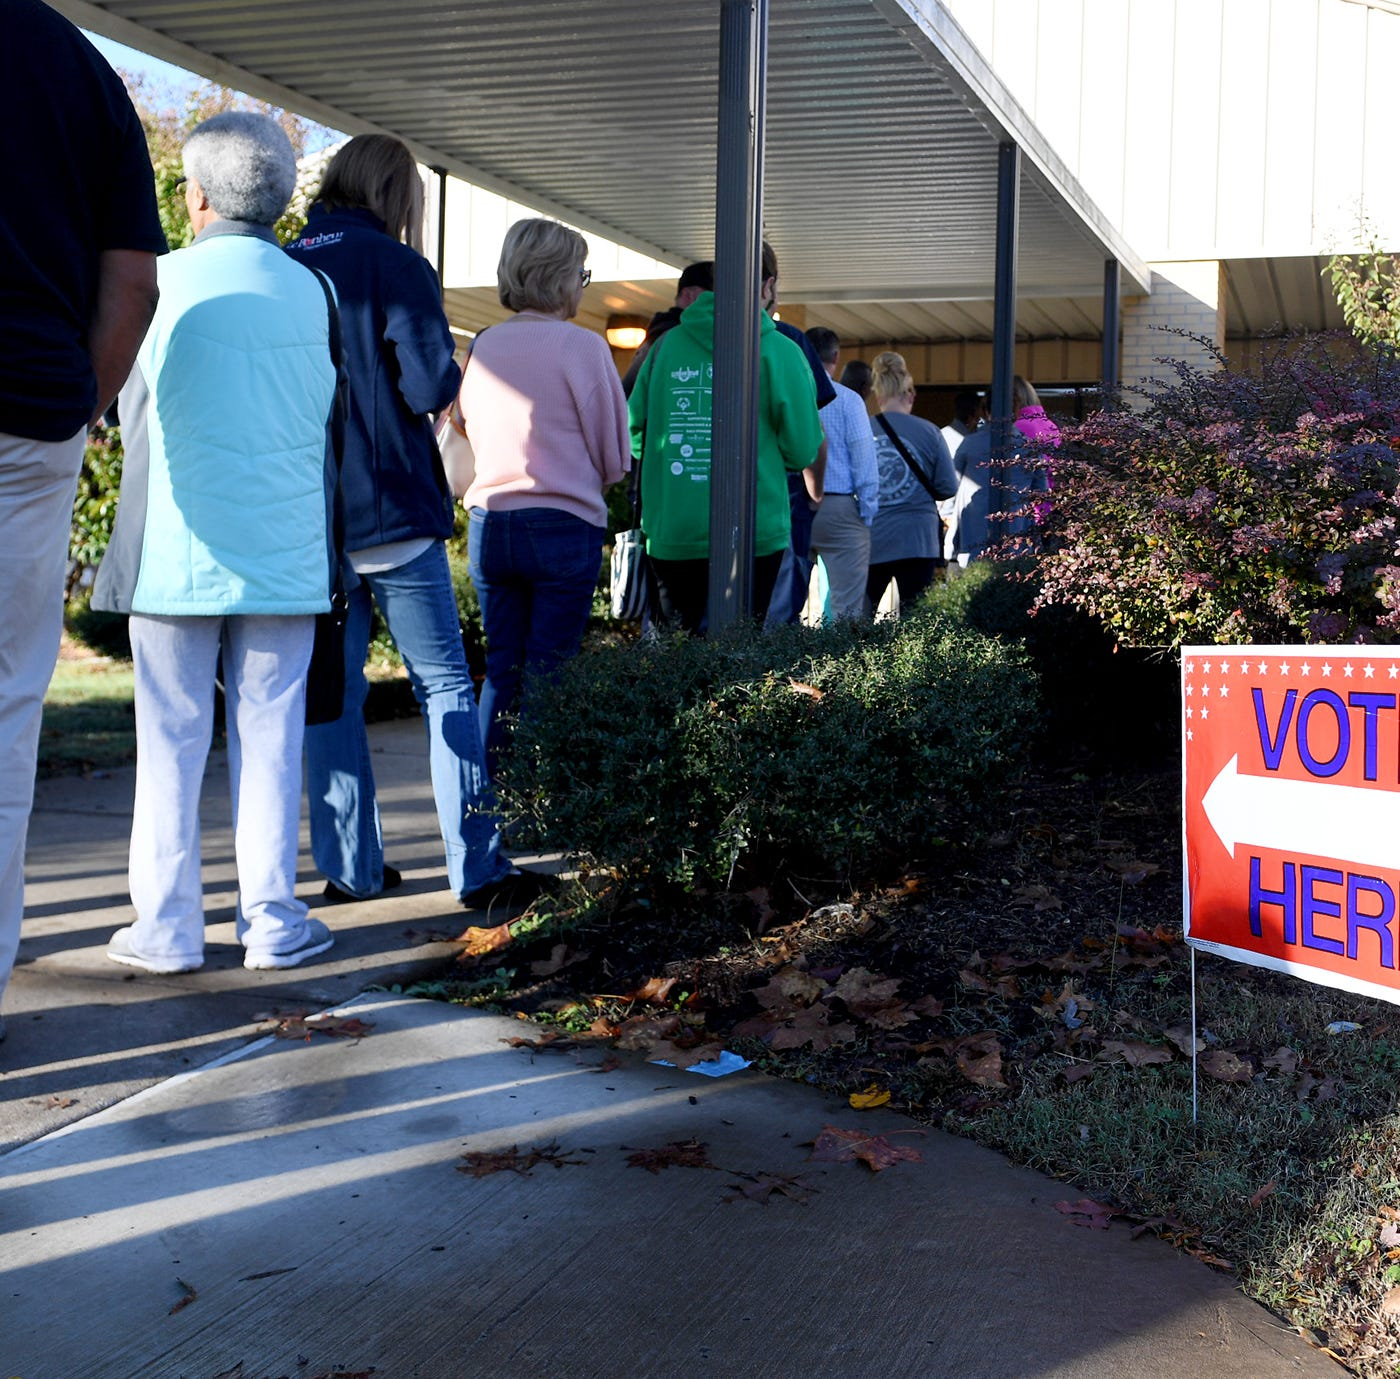 Madison County voters form a line outside of Pope Elementary School in Jackson to cast their ballots in the 2018 midterm elections, Tuesday, November 6.